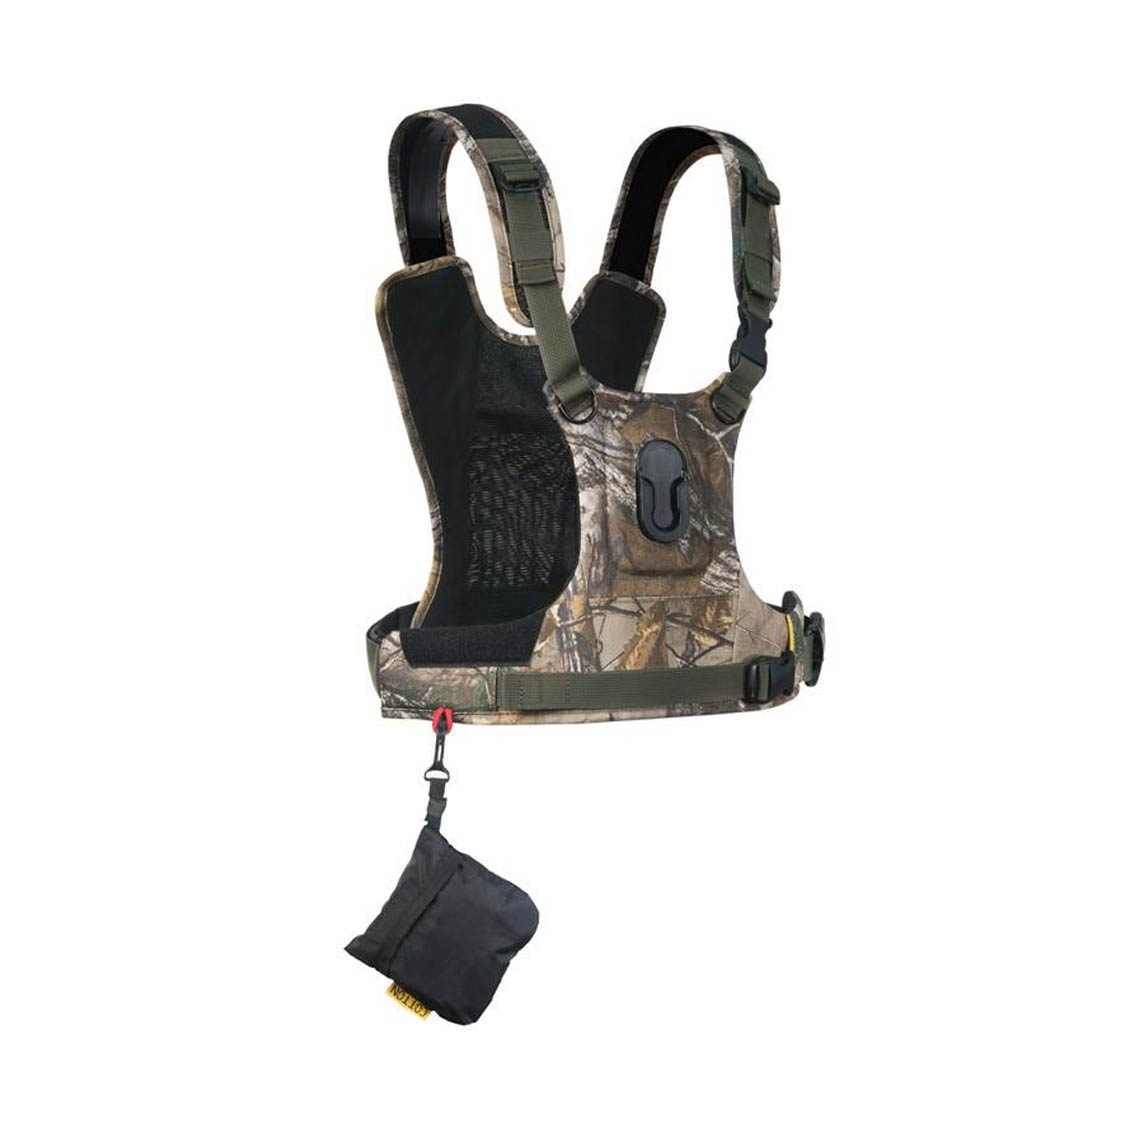 Cotton Carrier G3 Harness 1 (camo)